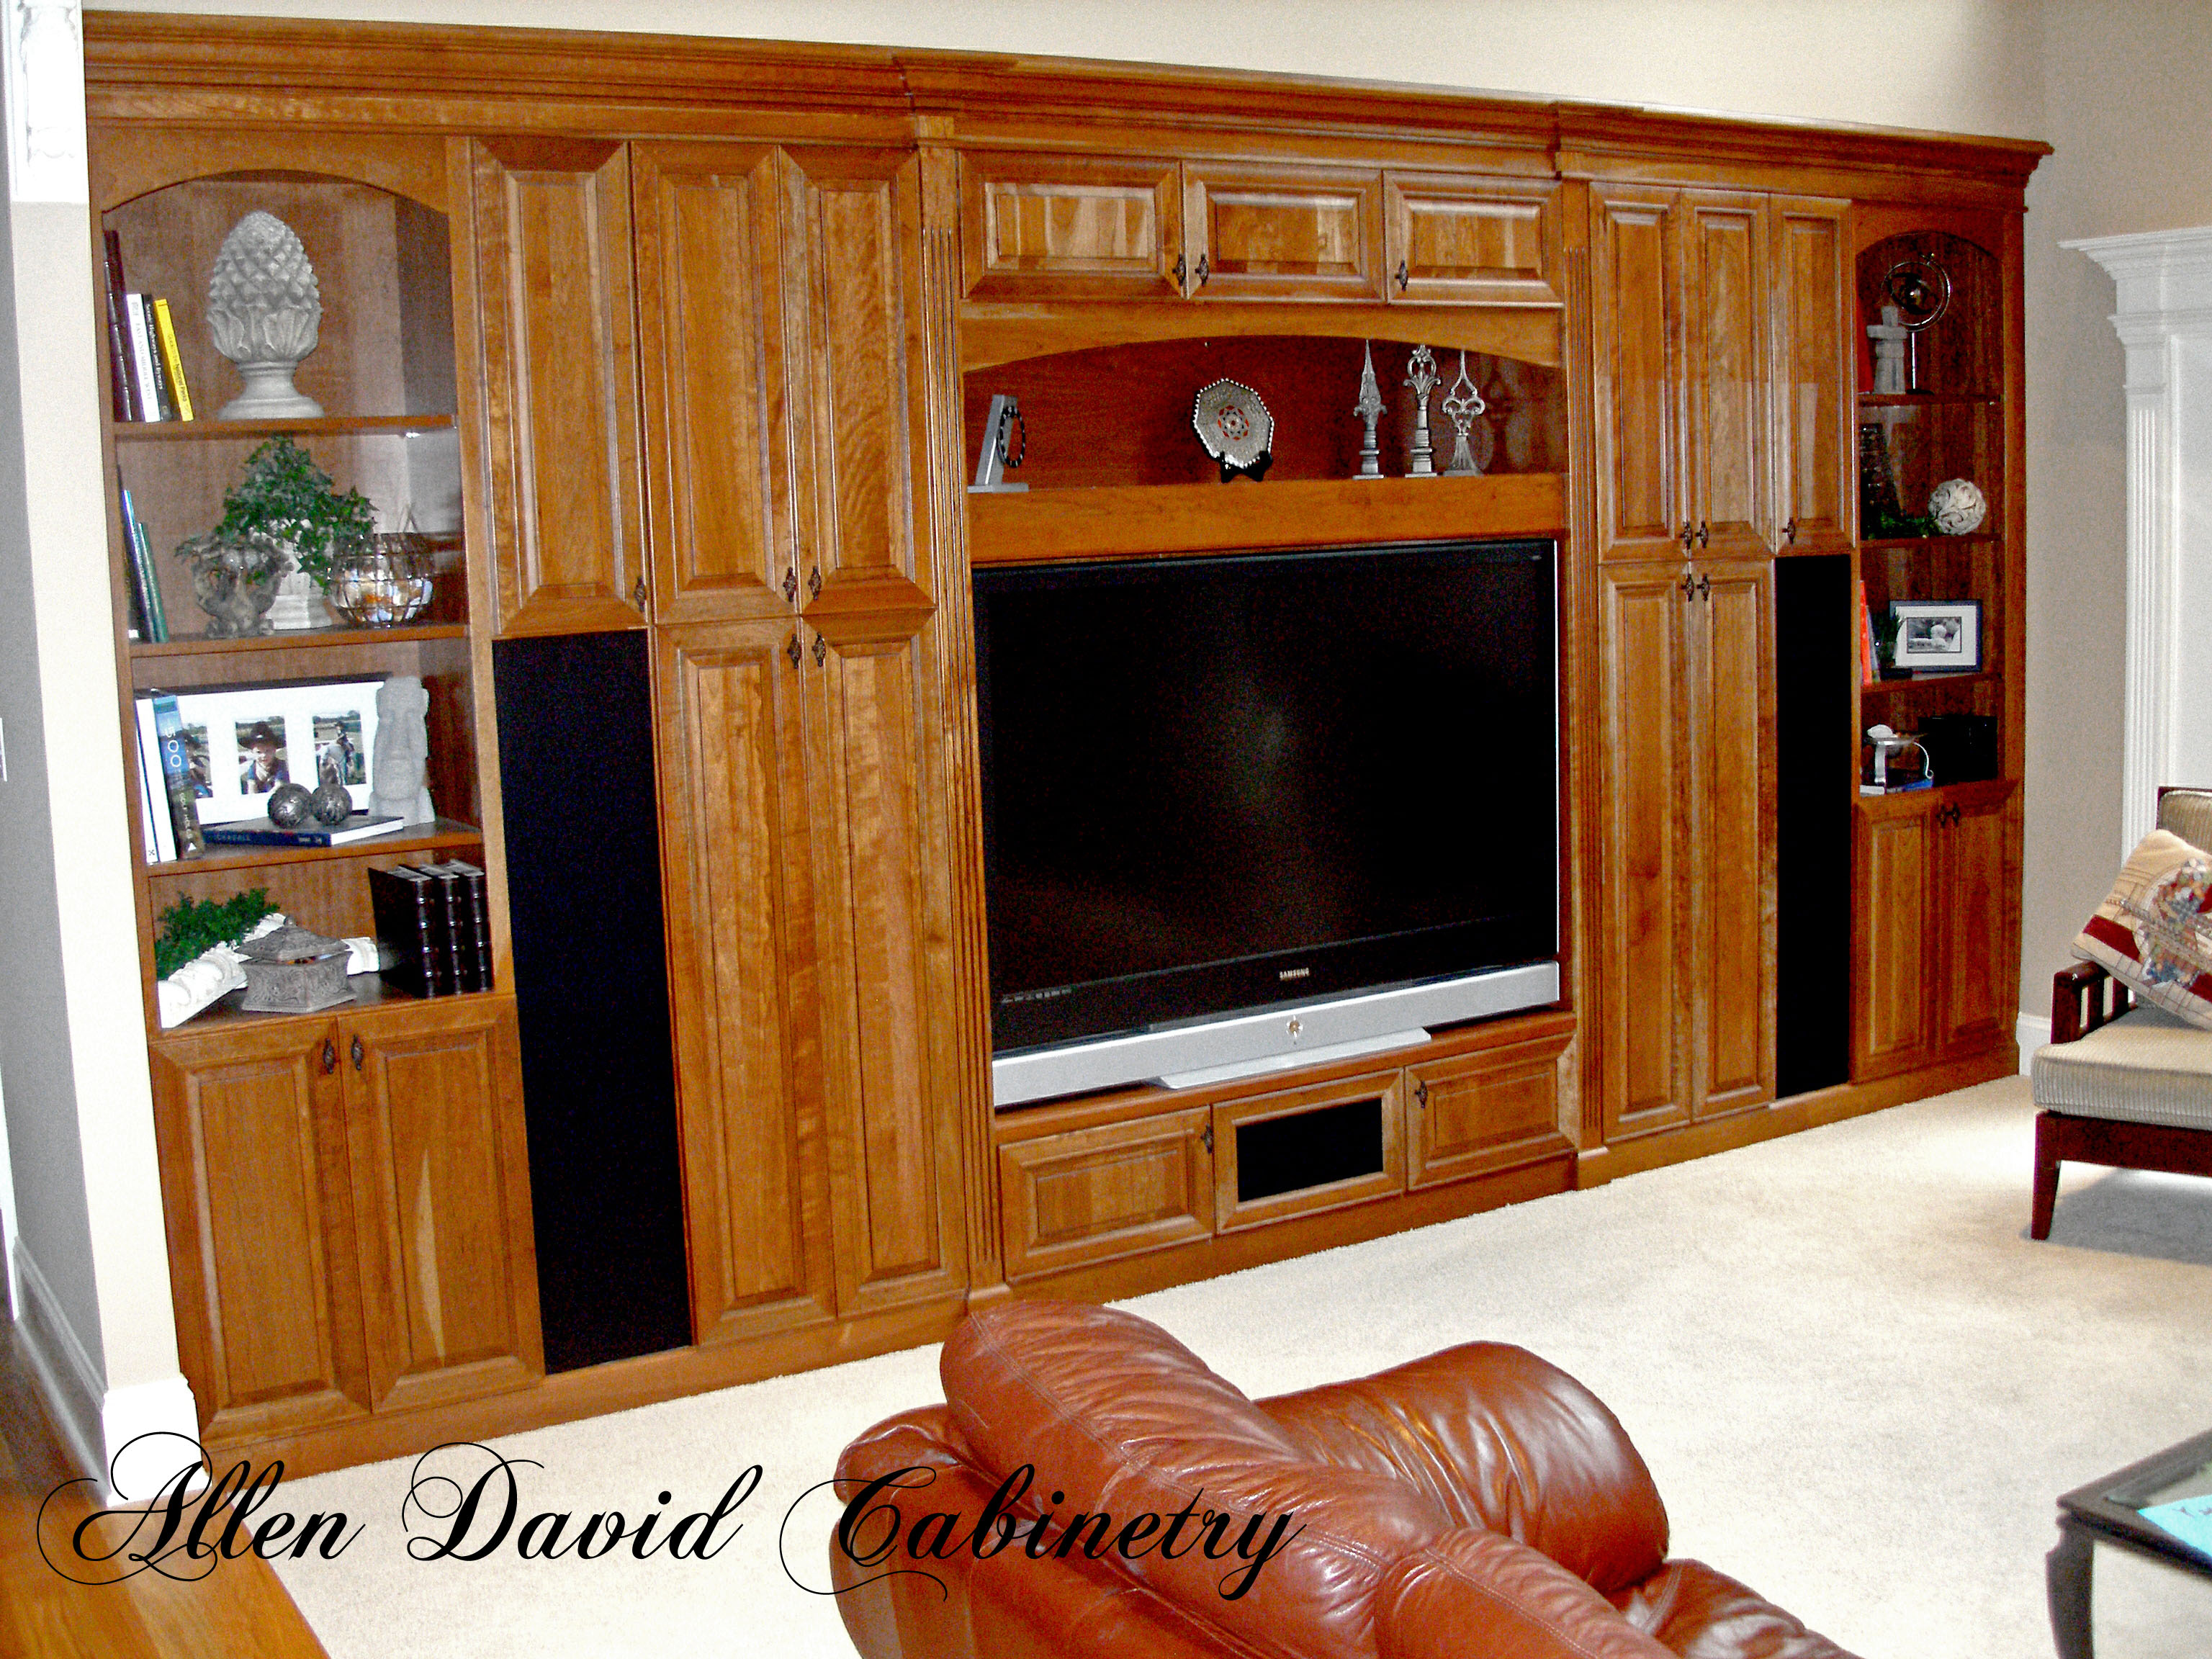 Kitchen Cabinets By Allen David Cabinetry 980 722 9186